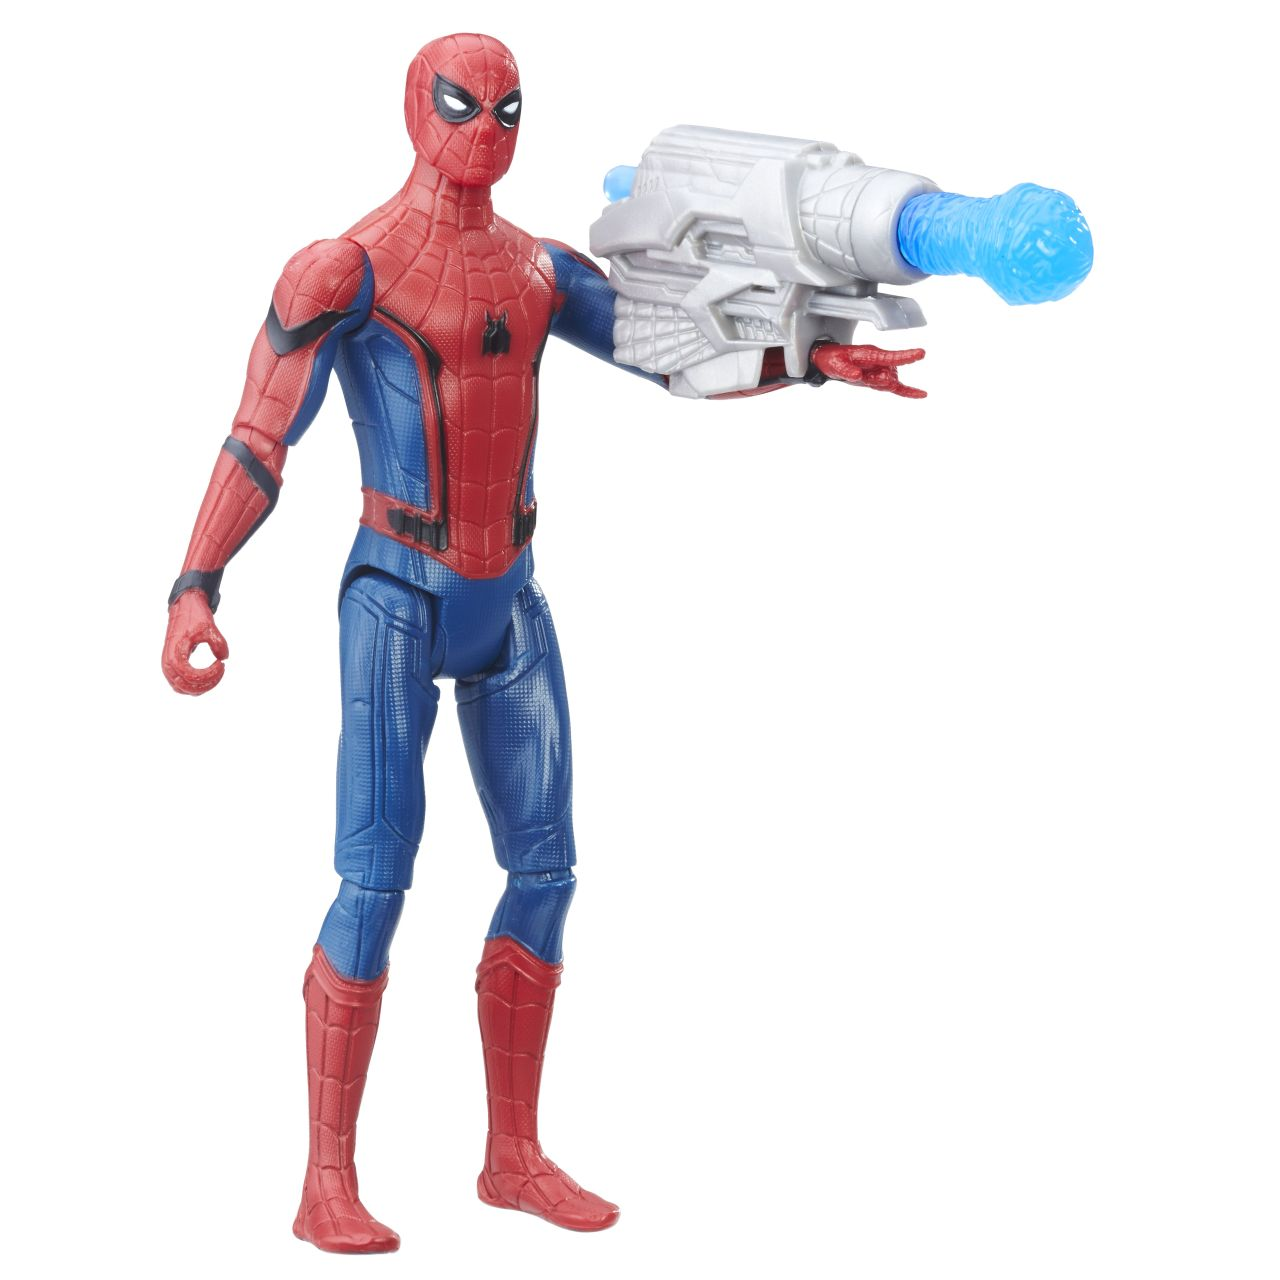 Spider-Man: Homecoming Toys